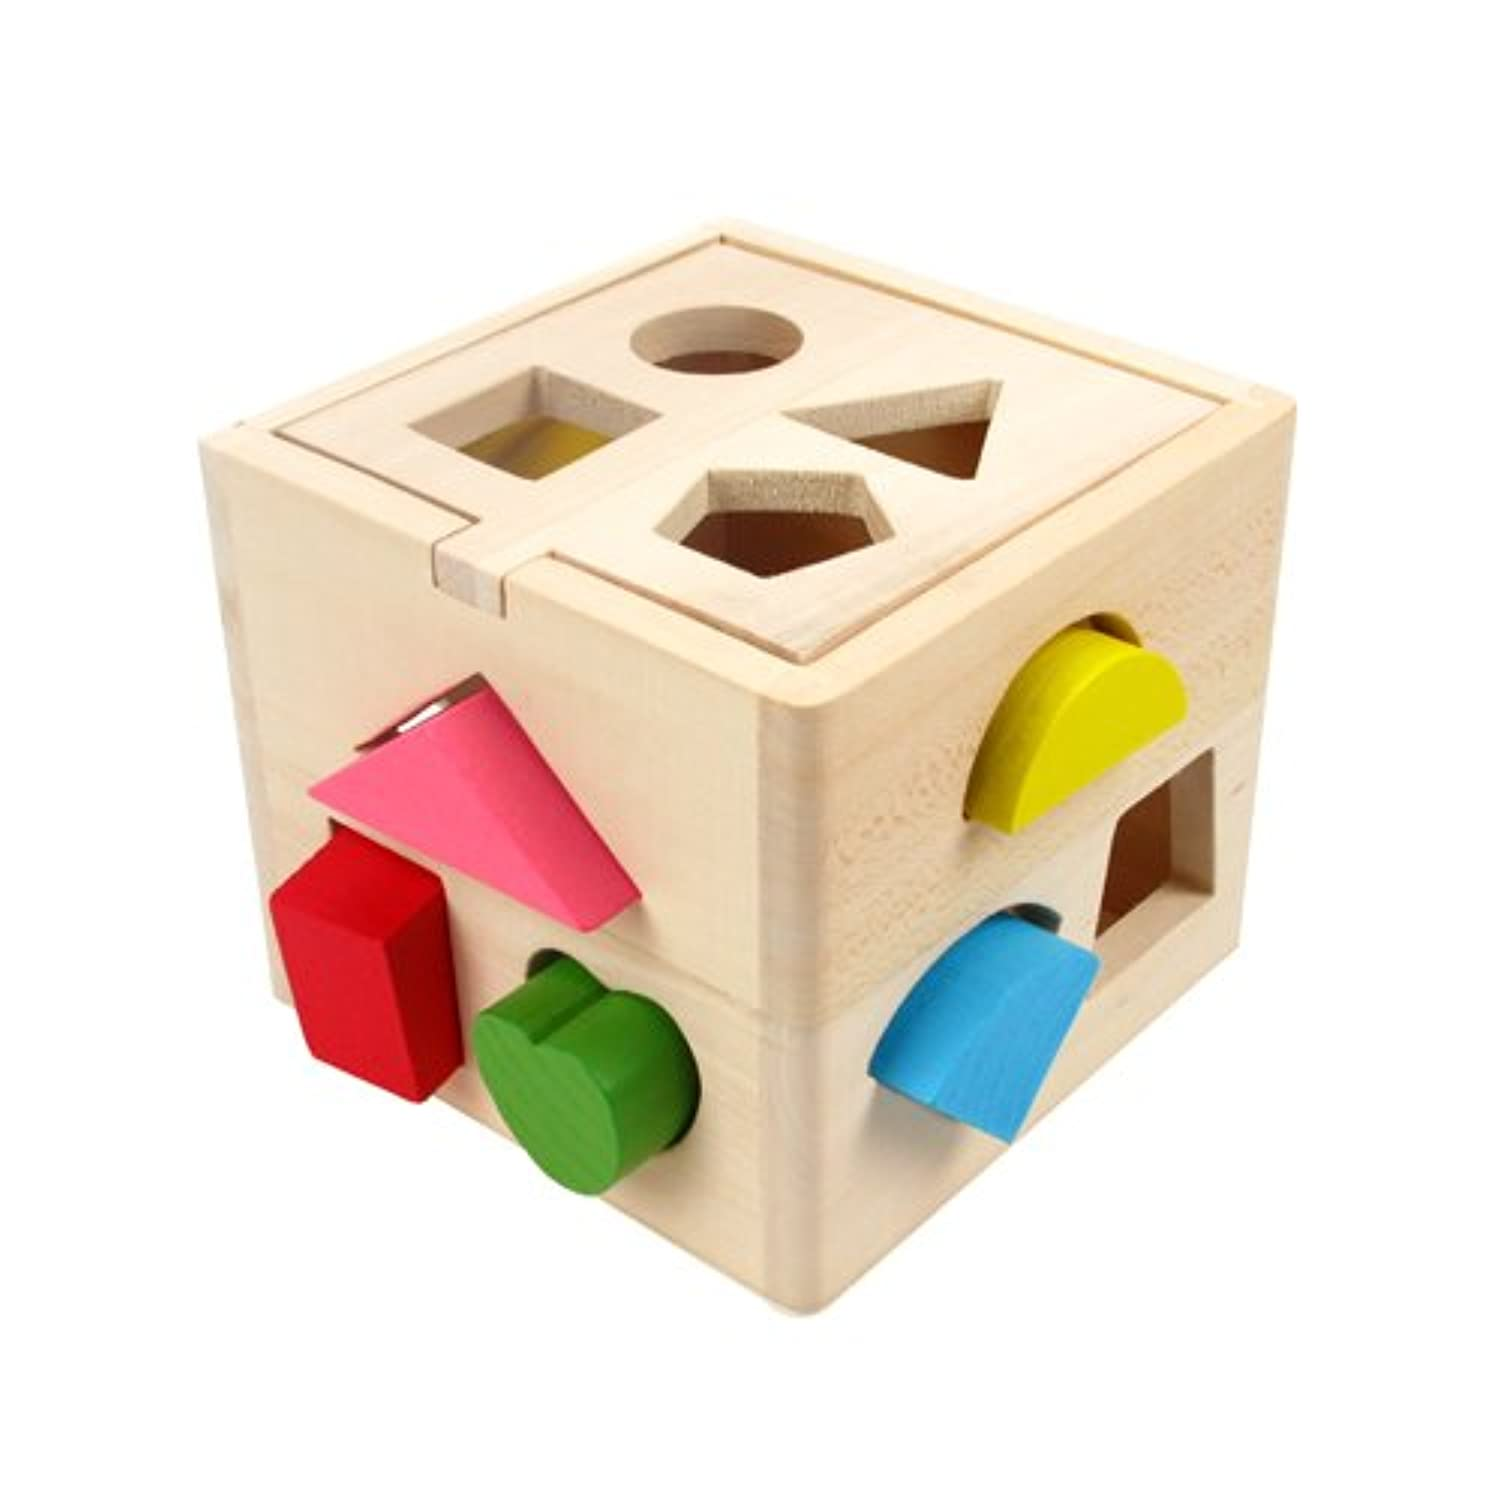 木製Shape Sorting Cube for Toddlers by kidzzingz – 13異なるカラフルShapes with Easy Openキューブ